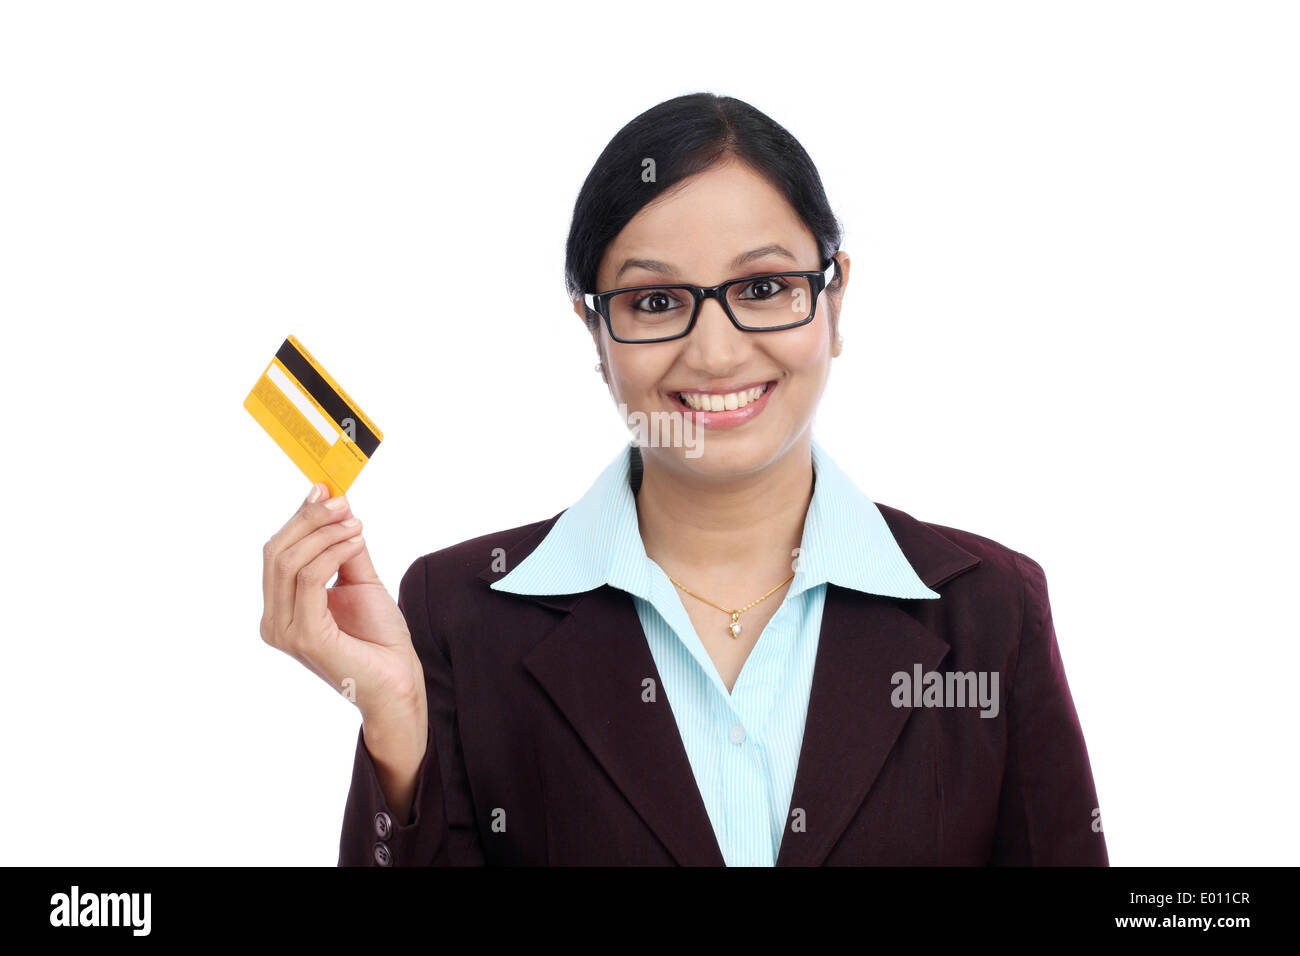 Indian lady showing credit card stock photos indian lady showing happy young indian business woman with credit card against white background stock image reheart Images